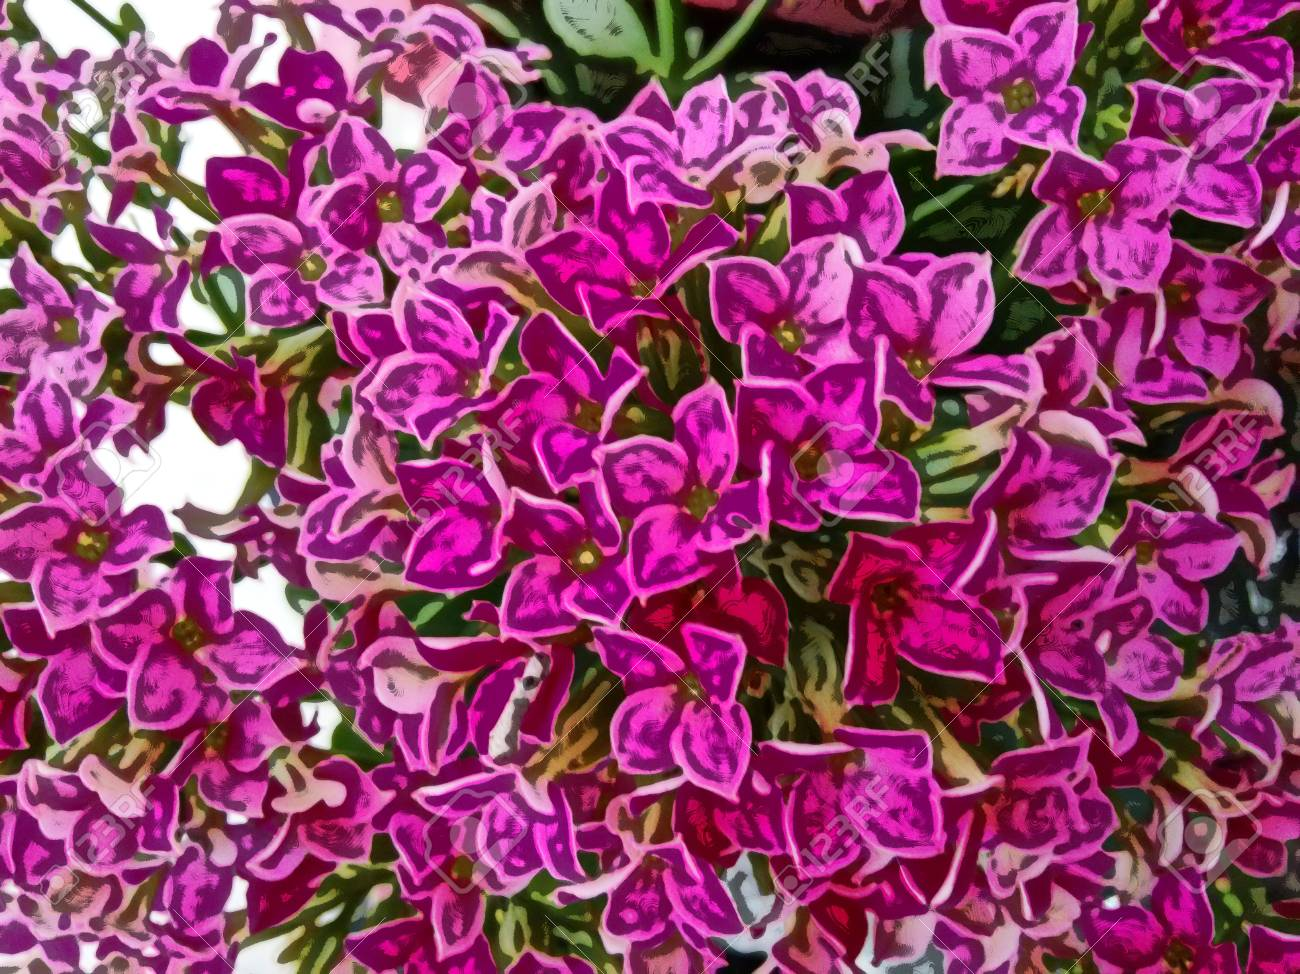 Kalanchoe Flower Pink A Tropical Succulent Plant With Clusters